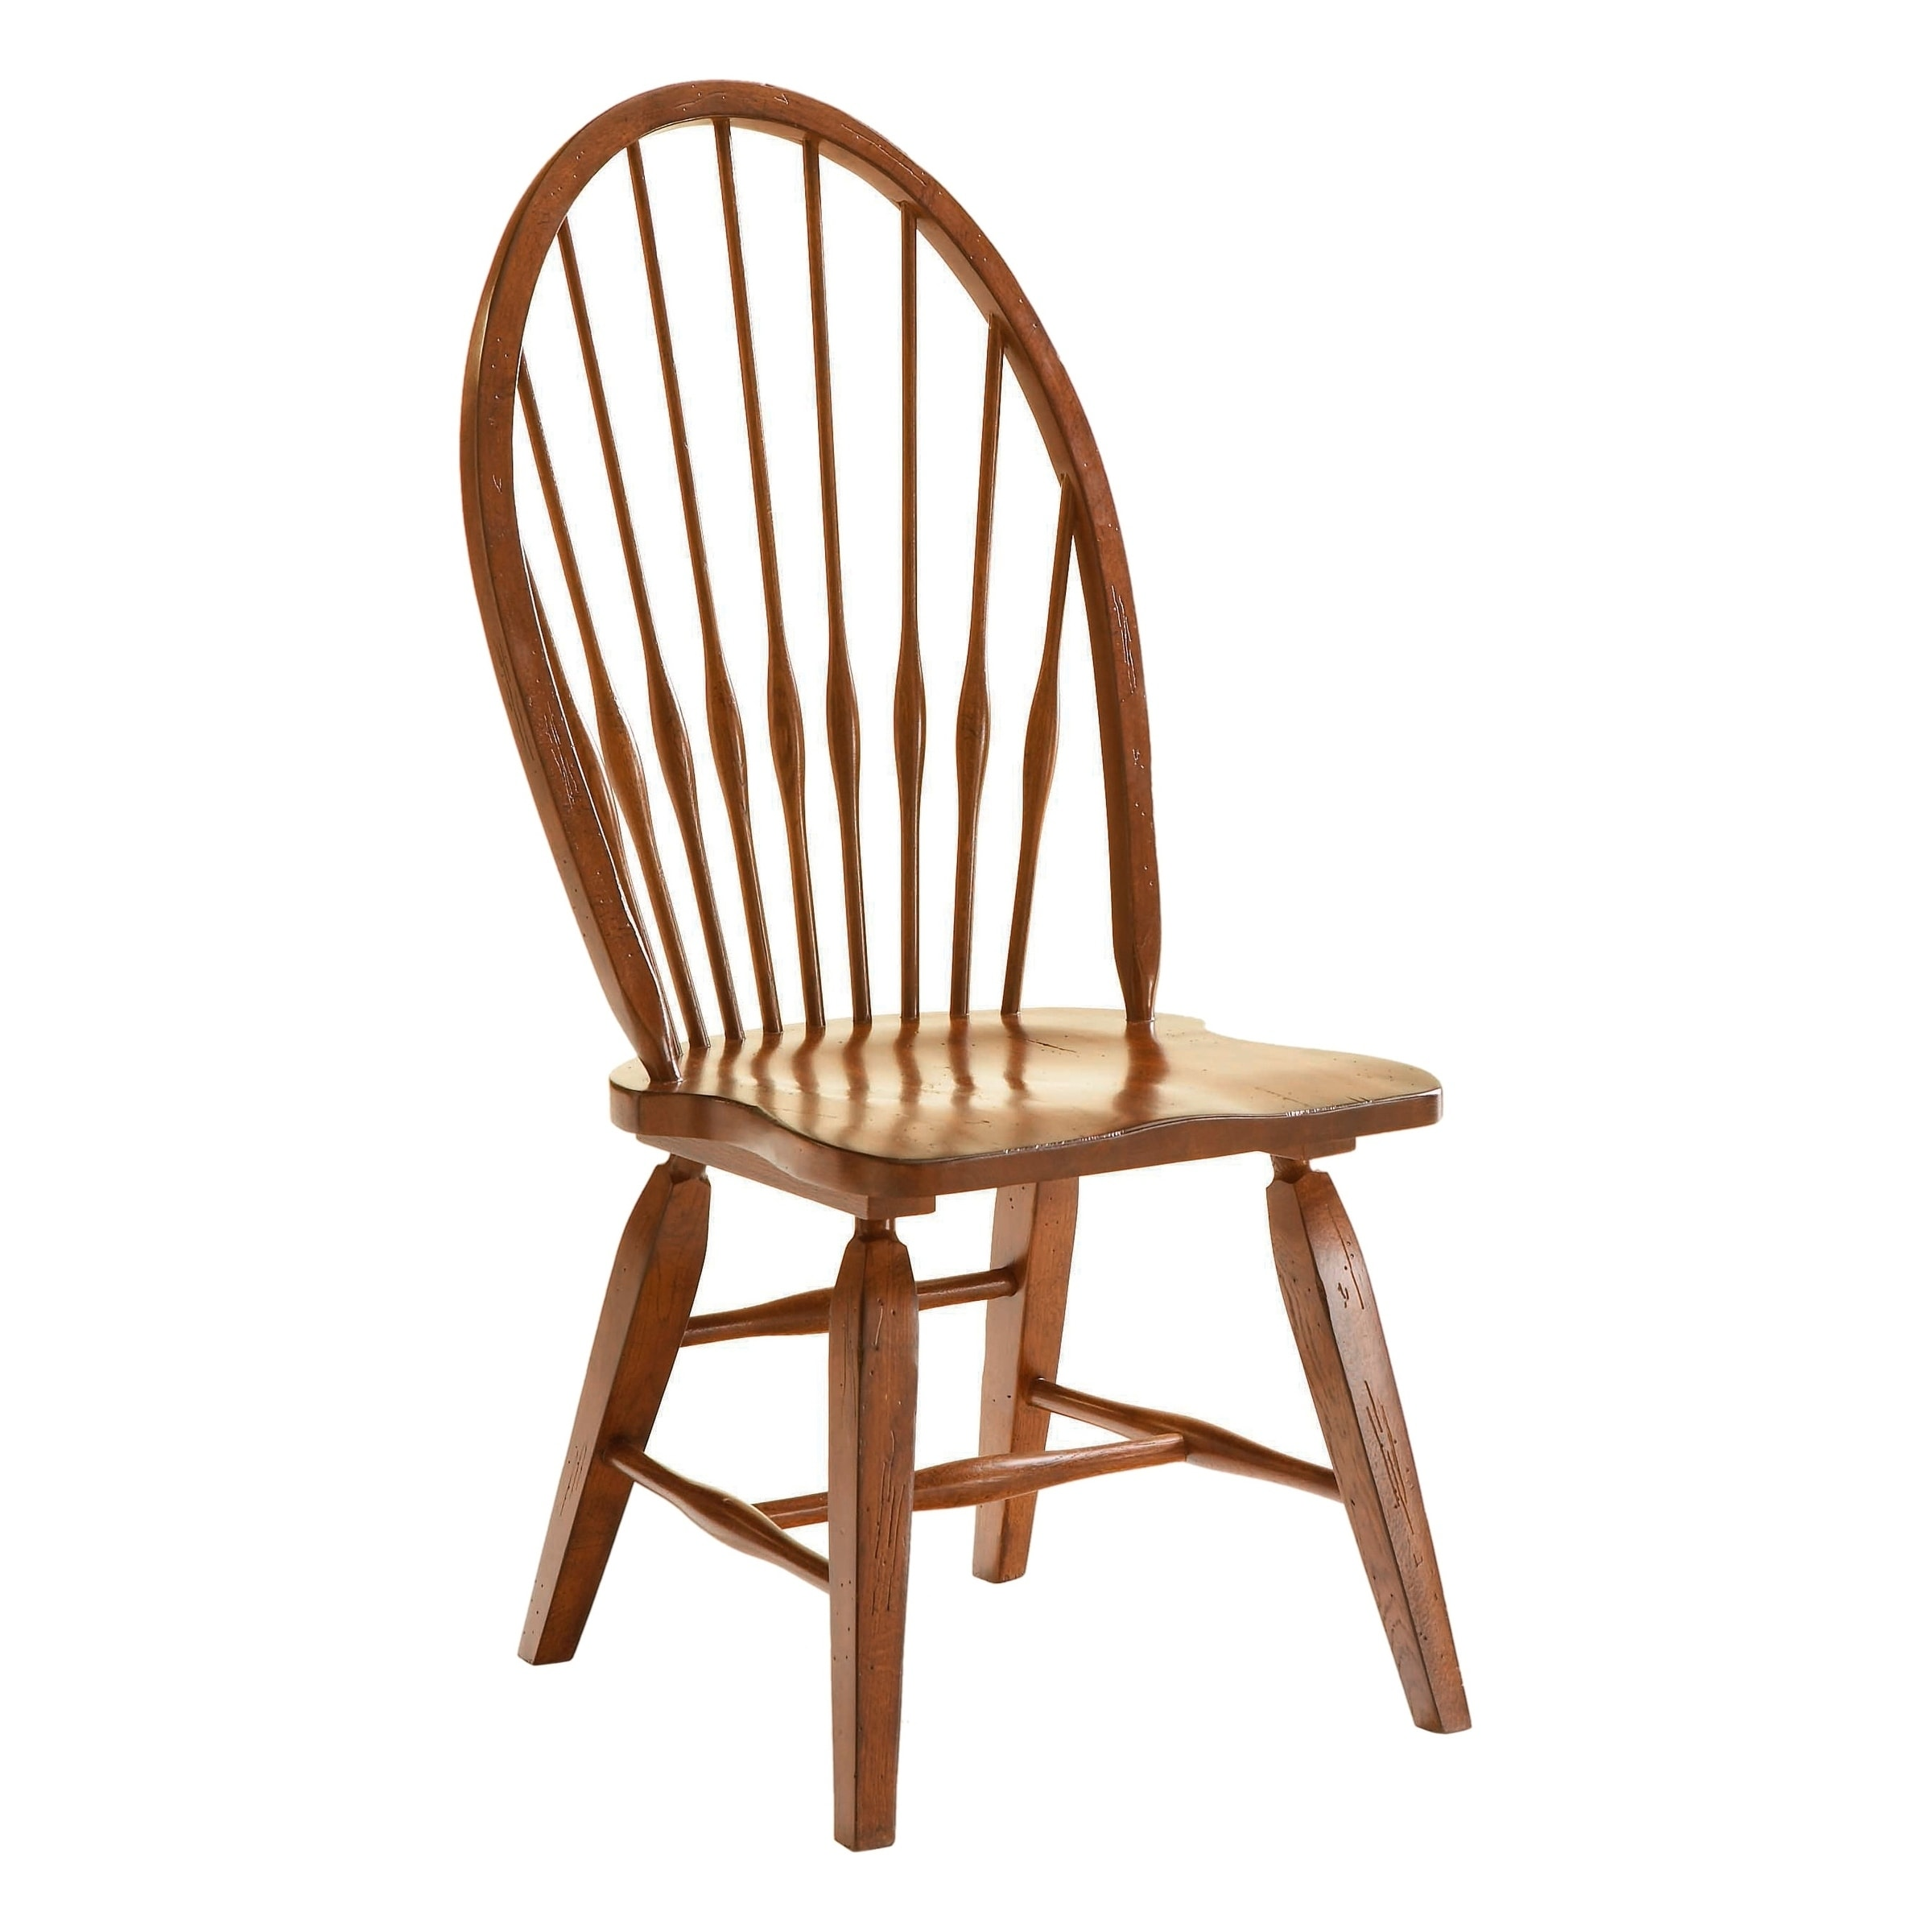 oak windsor chairs allsteel access chair instructions shop broyhill attic rustic dining side free shipping today overstock com 21620762